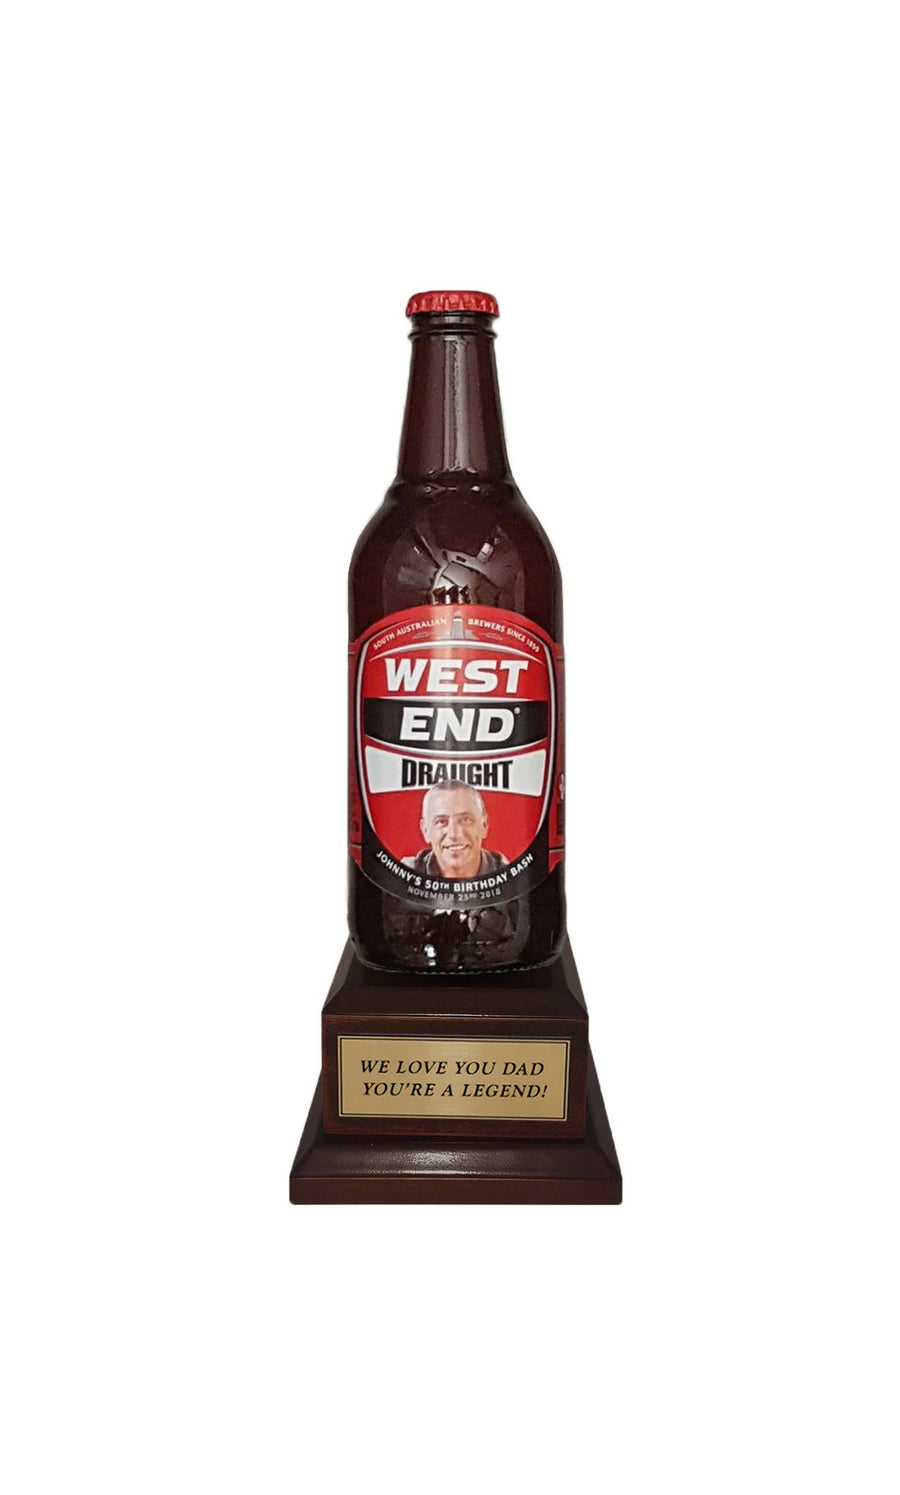 WEST END DRAUGHT Bottle on Pedestal with PERSONALISED LABEL & PLAQUE